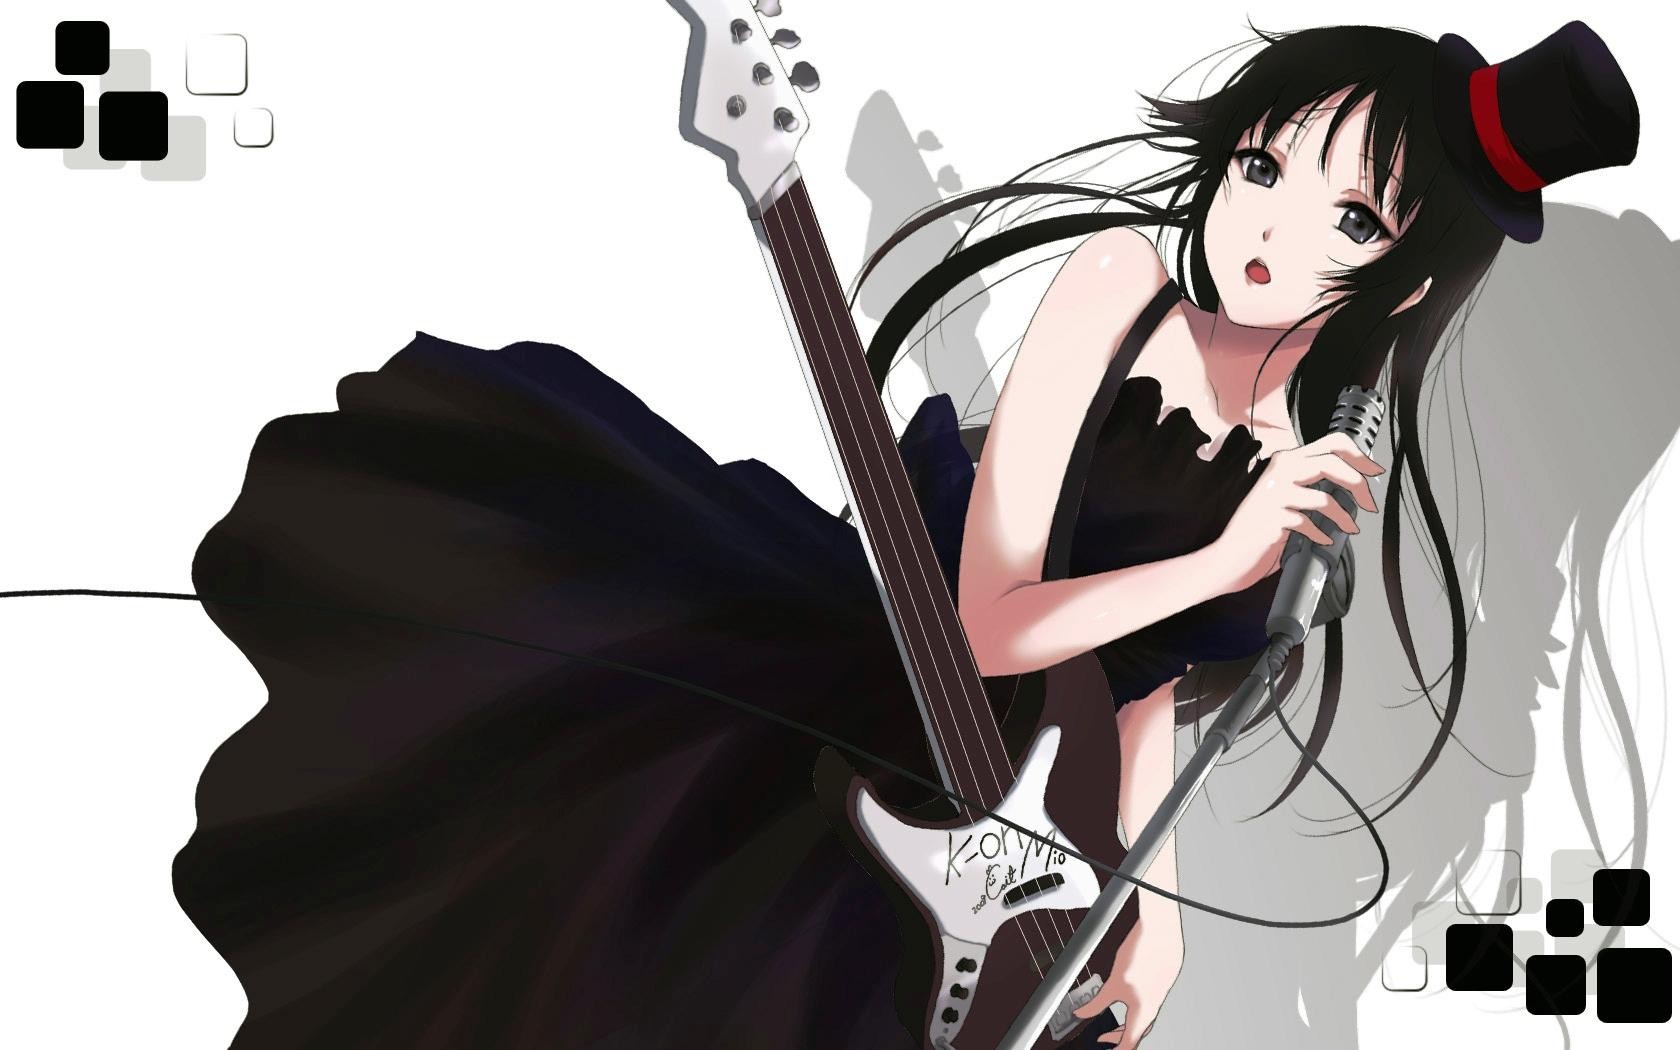 Rock Band Anime Girls Wallpapers - Wallpaper Cave